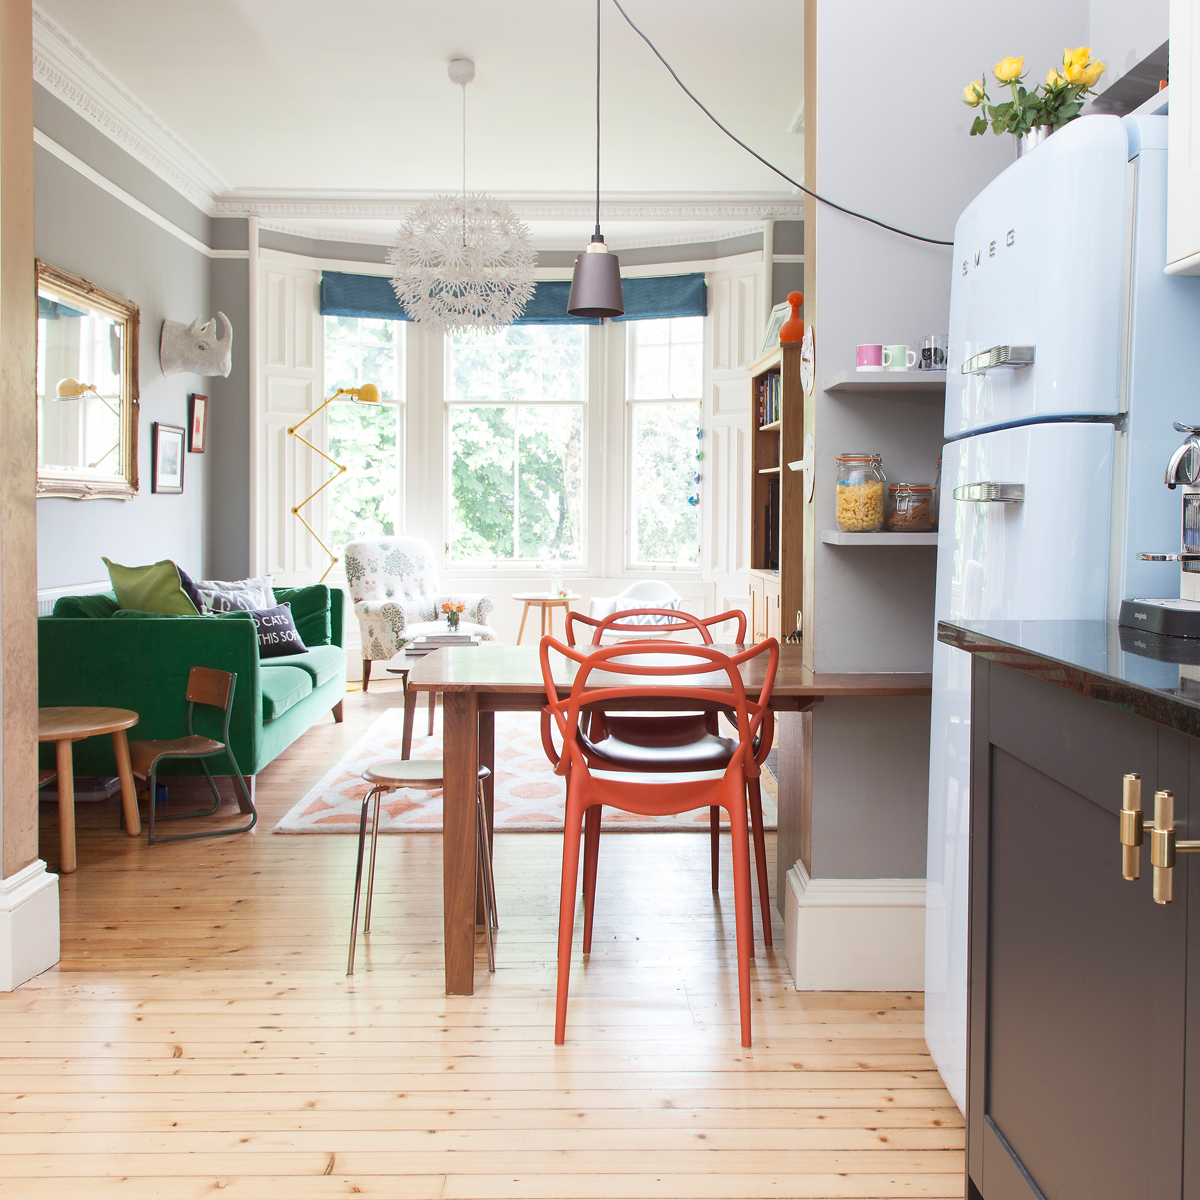 Open plan living at The Pink House/Photo: Susie Lowe